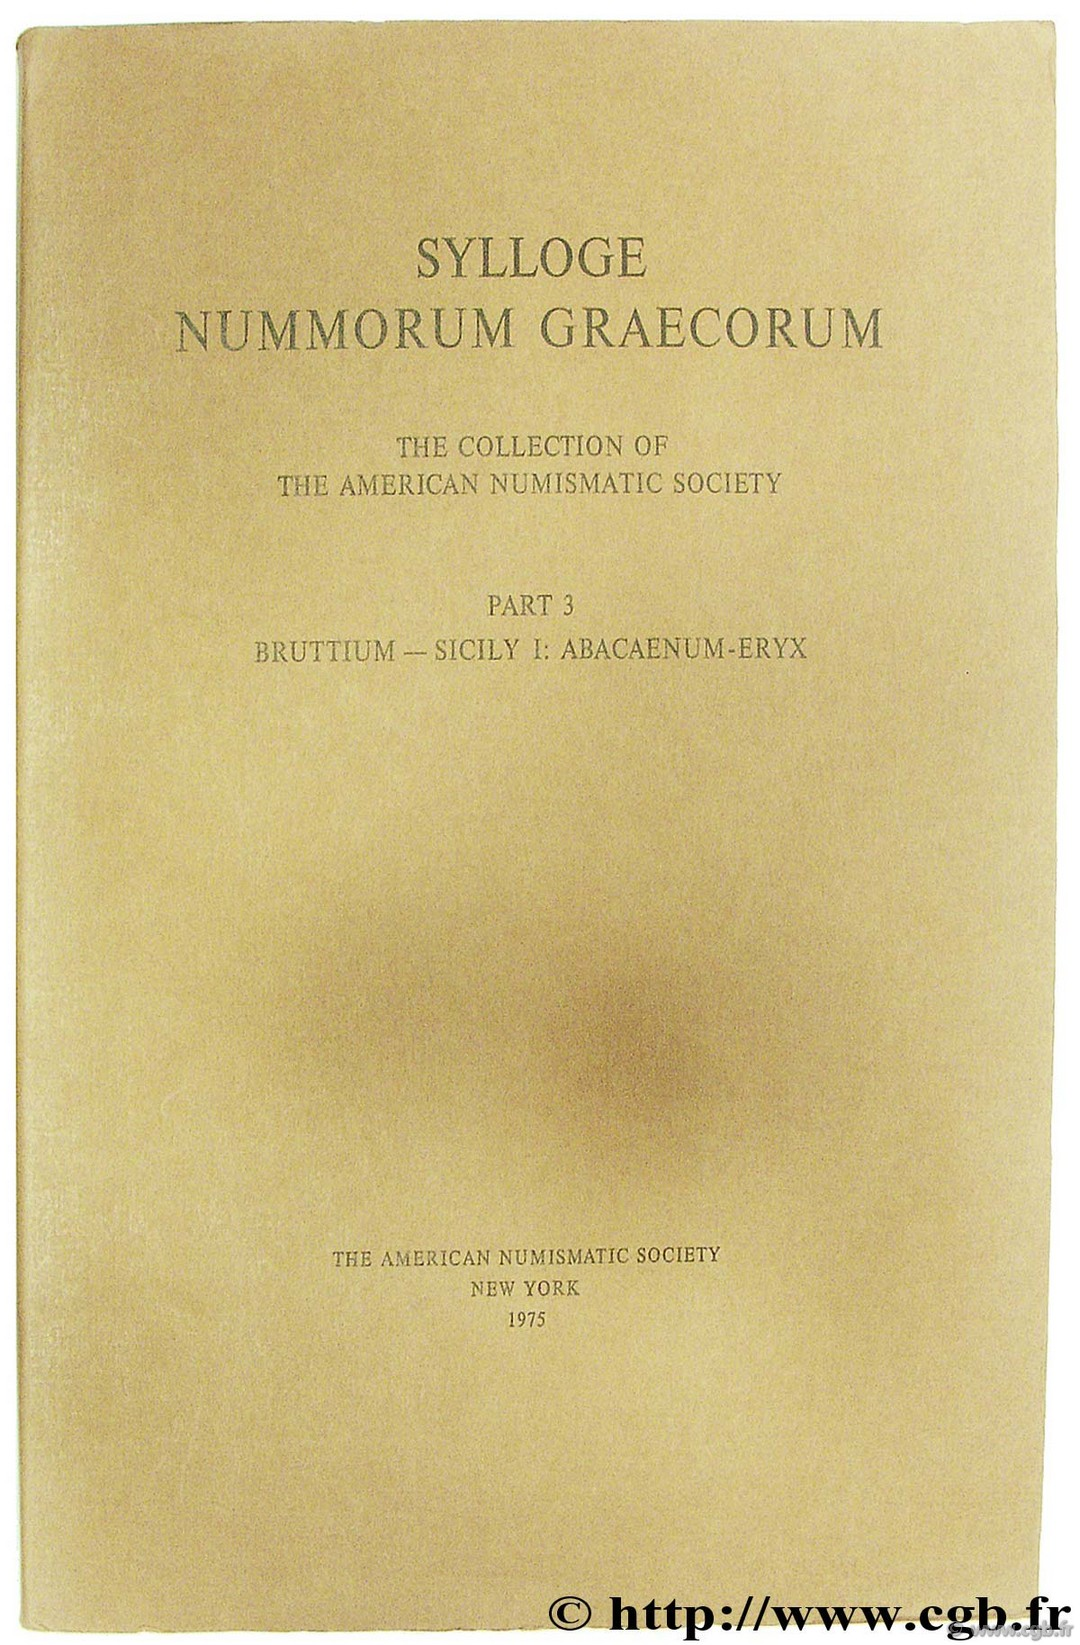 Sylloge Nummorum Graecorum The Collection of the American Numismatic Society